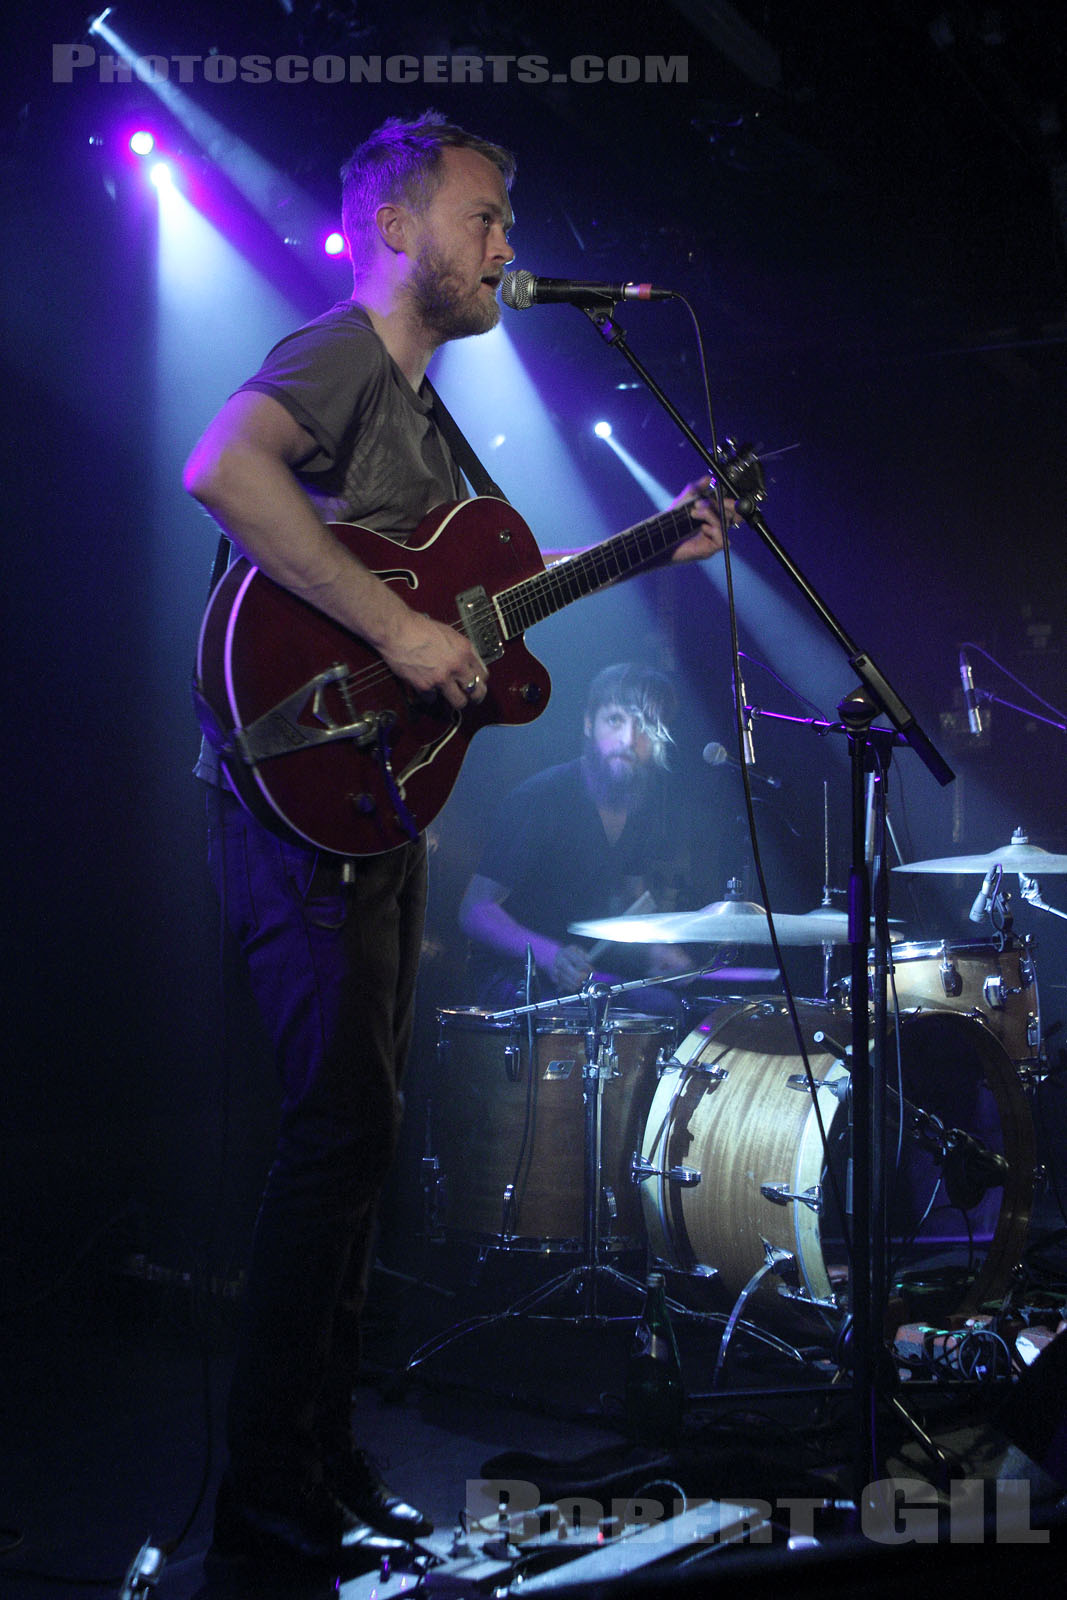 TWO GALLANTS - 2012-02-20 - PARIS - La Maroquinerie